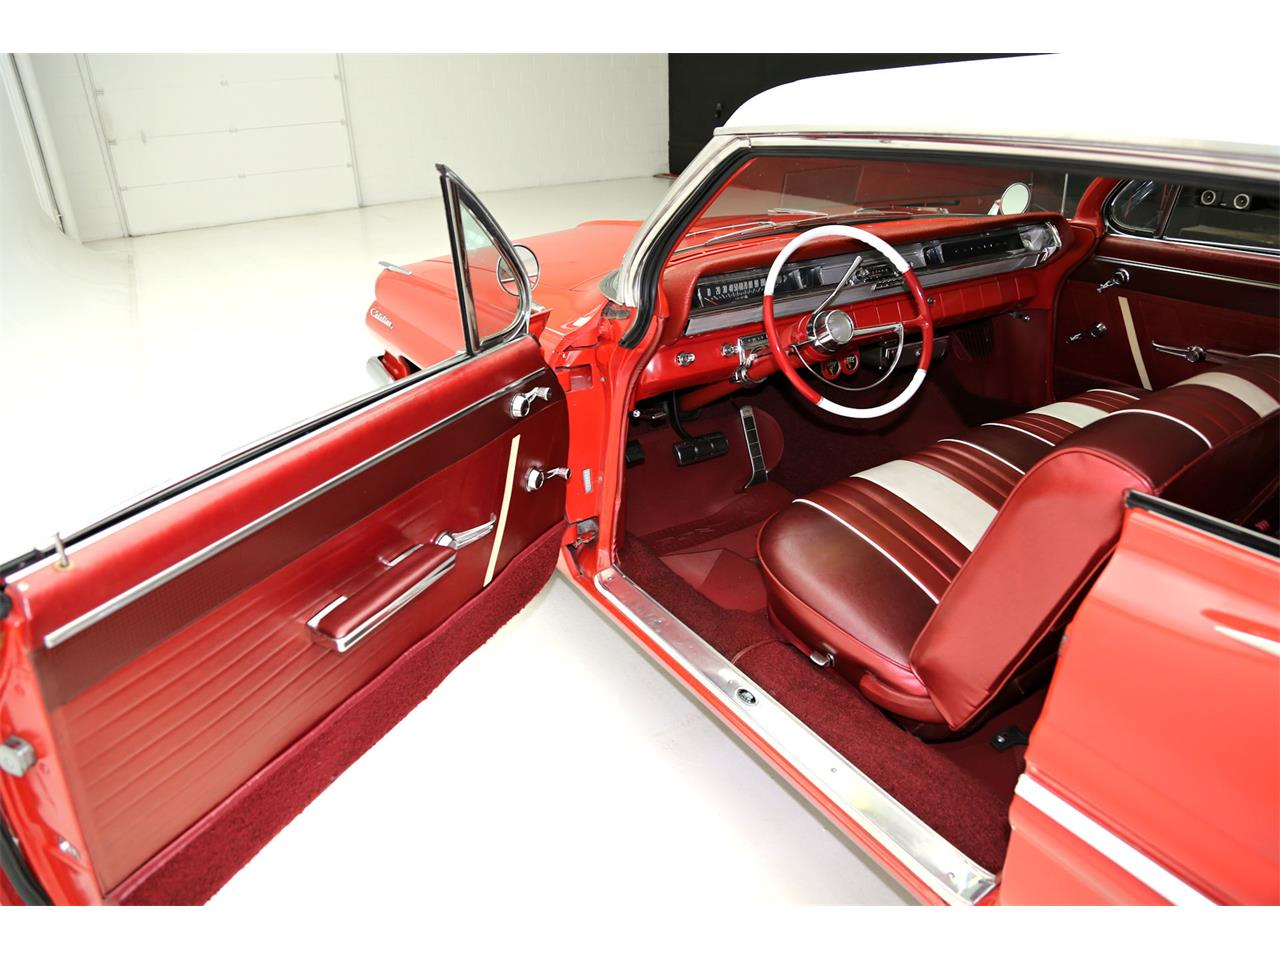 Large Picture of '62 Pontiac Catalina located in Des Moines Iowa - $27,900.00 - JRF9